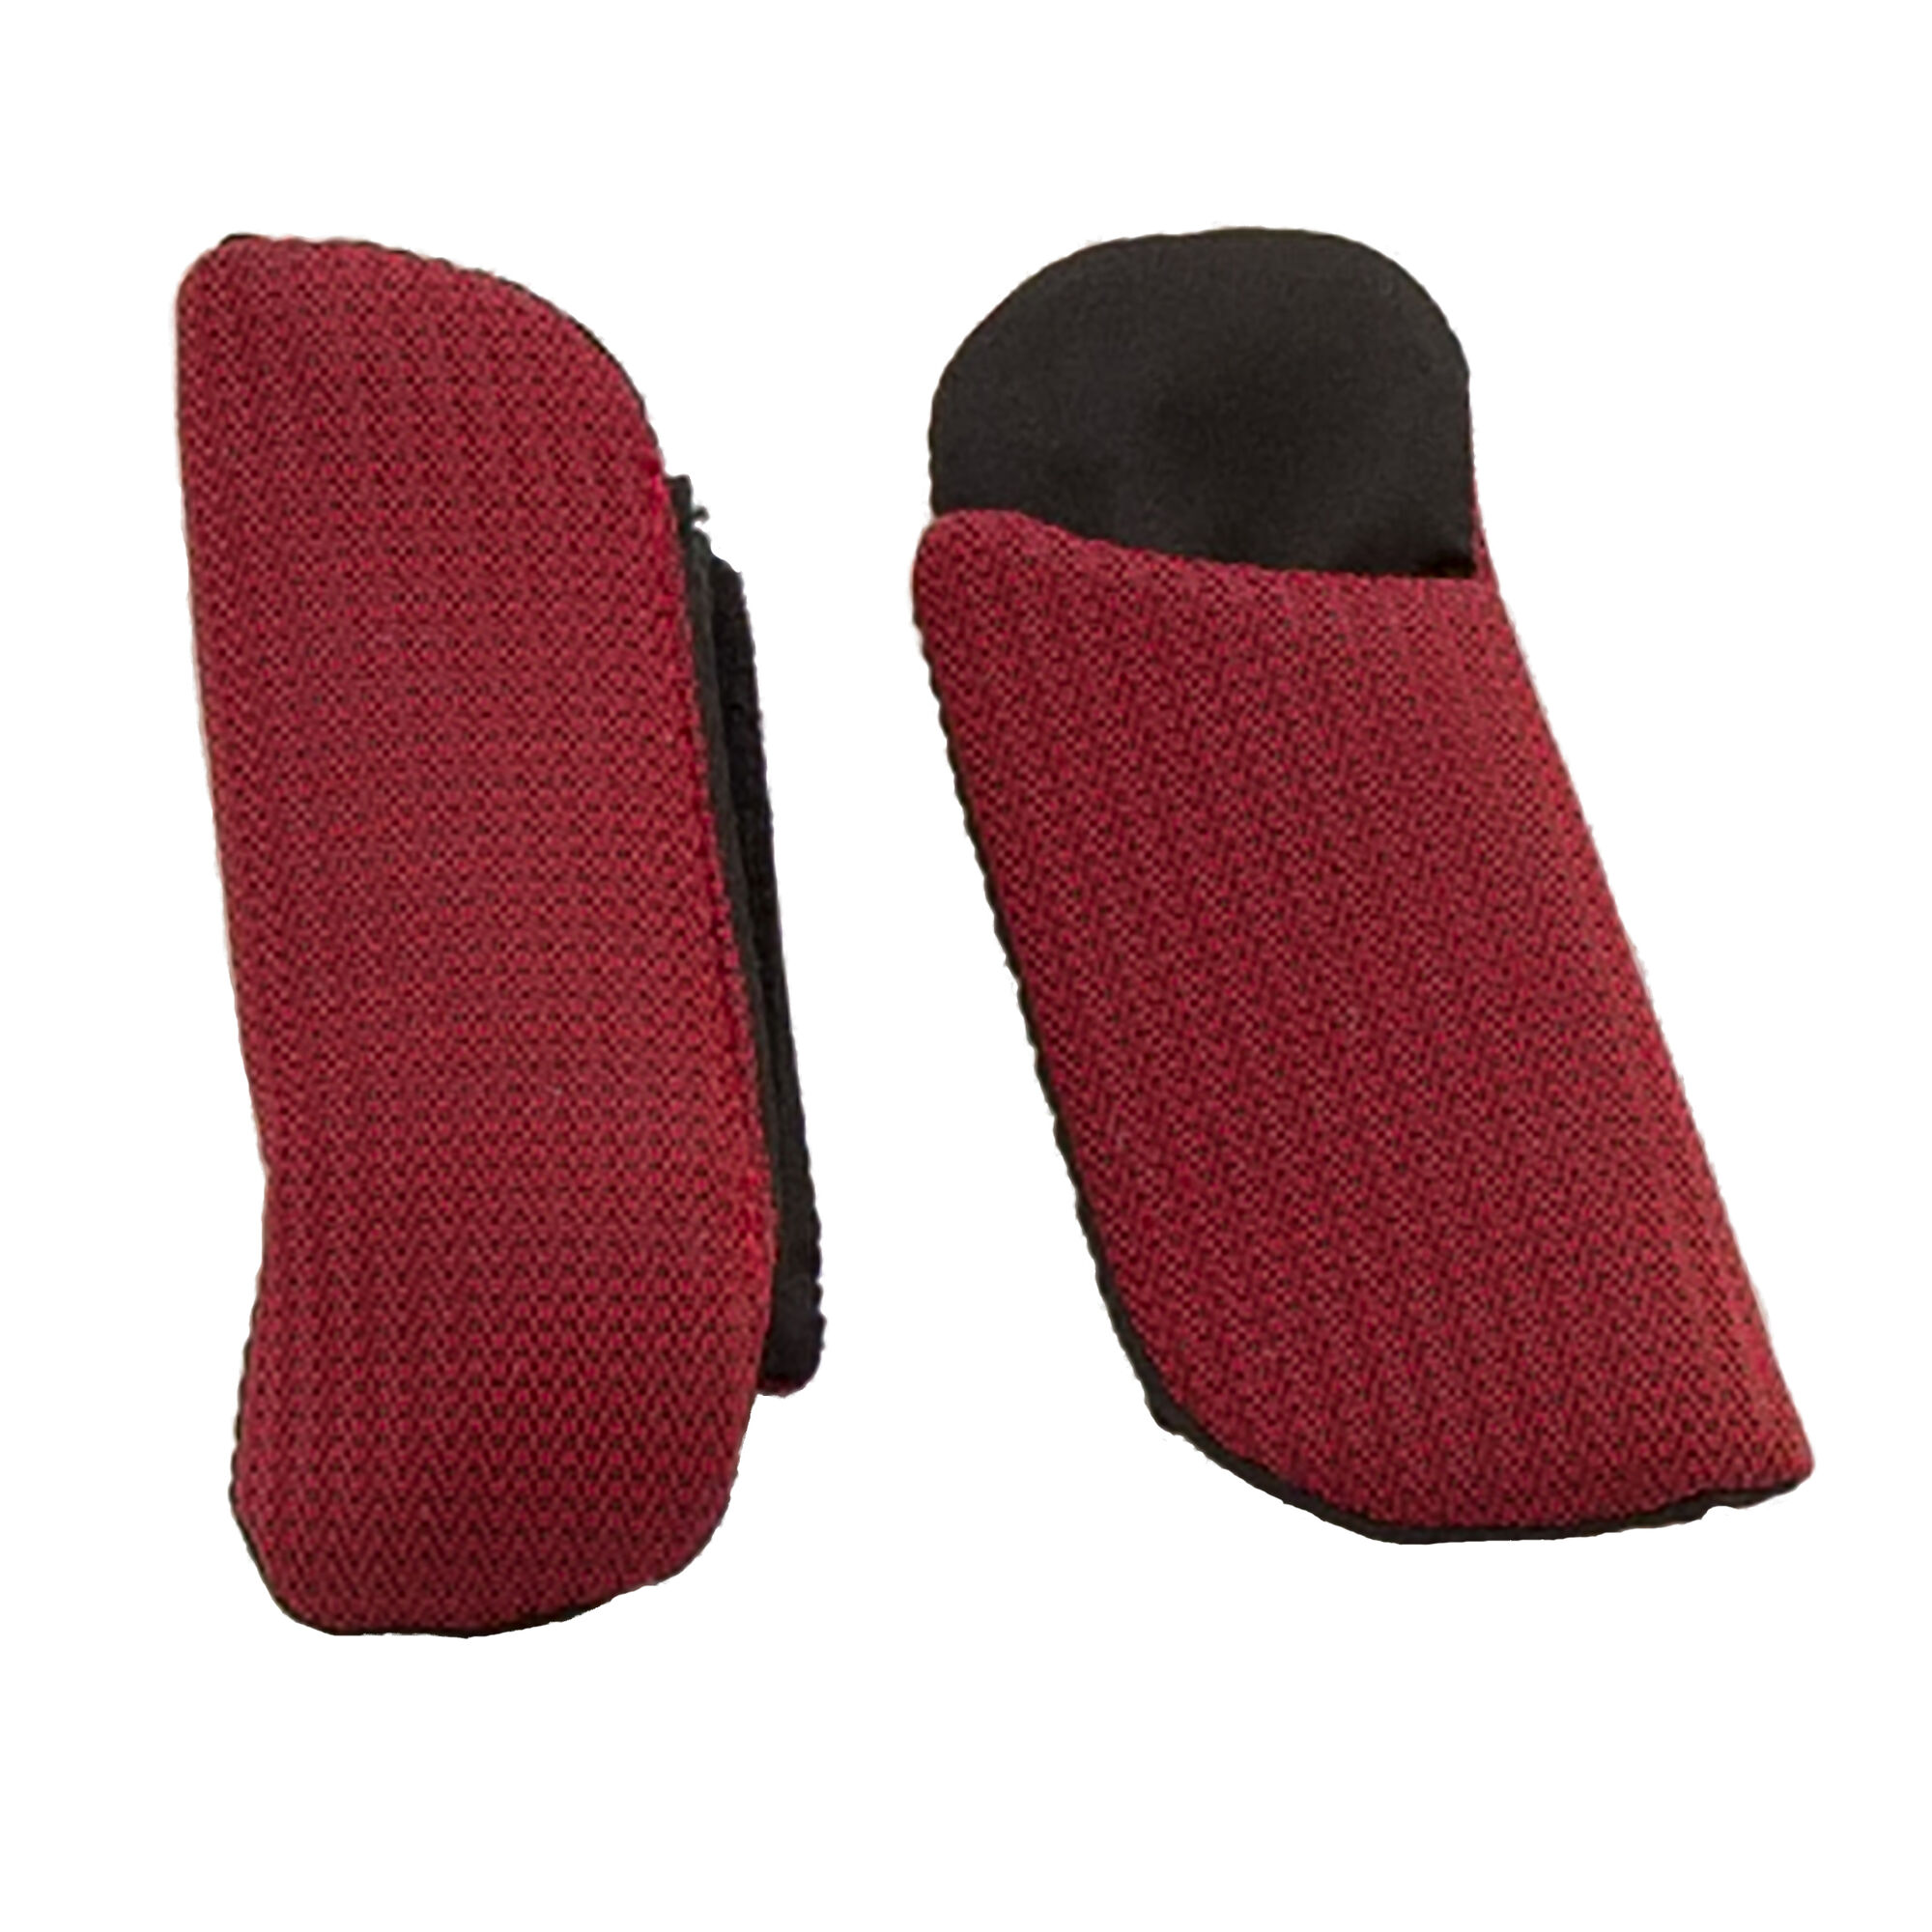 Chicco Car Seat Shoulder Pads